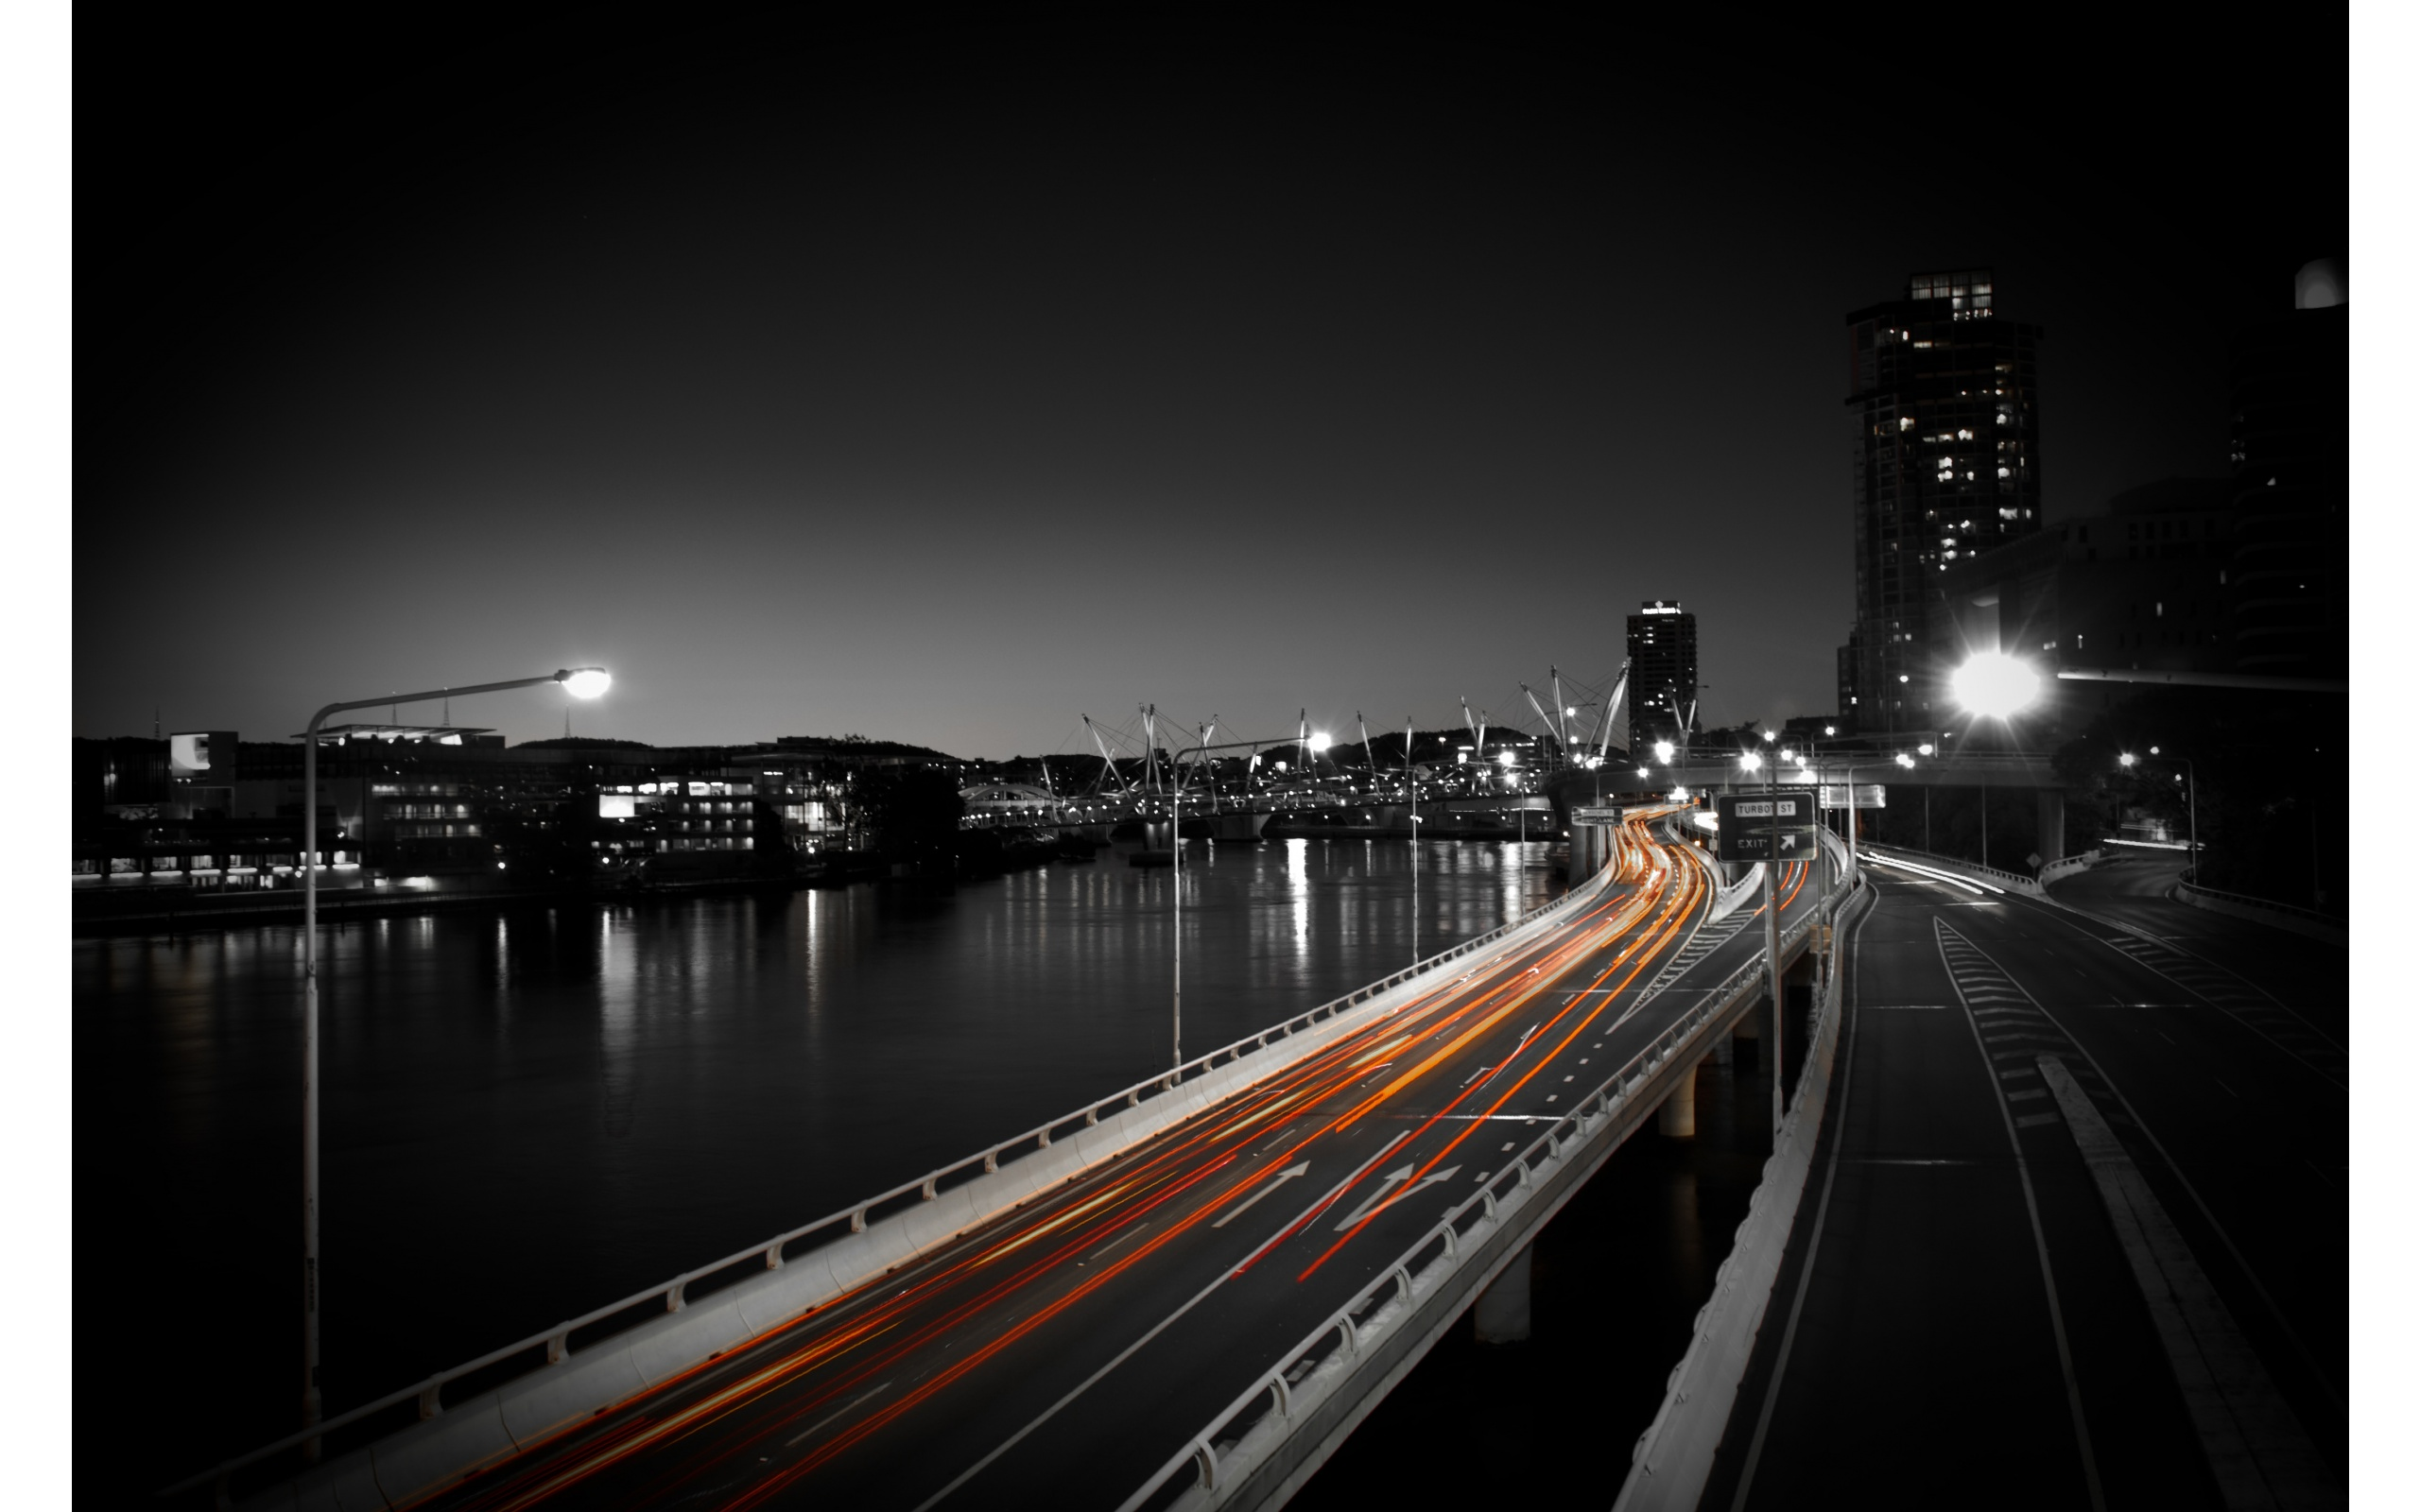 City Dark Night And Light Road | 2560 x 1600 | Download | Close